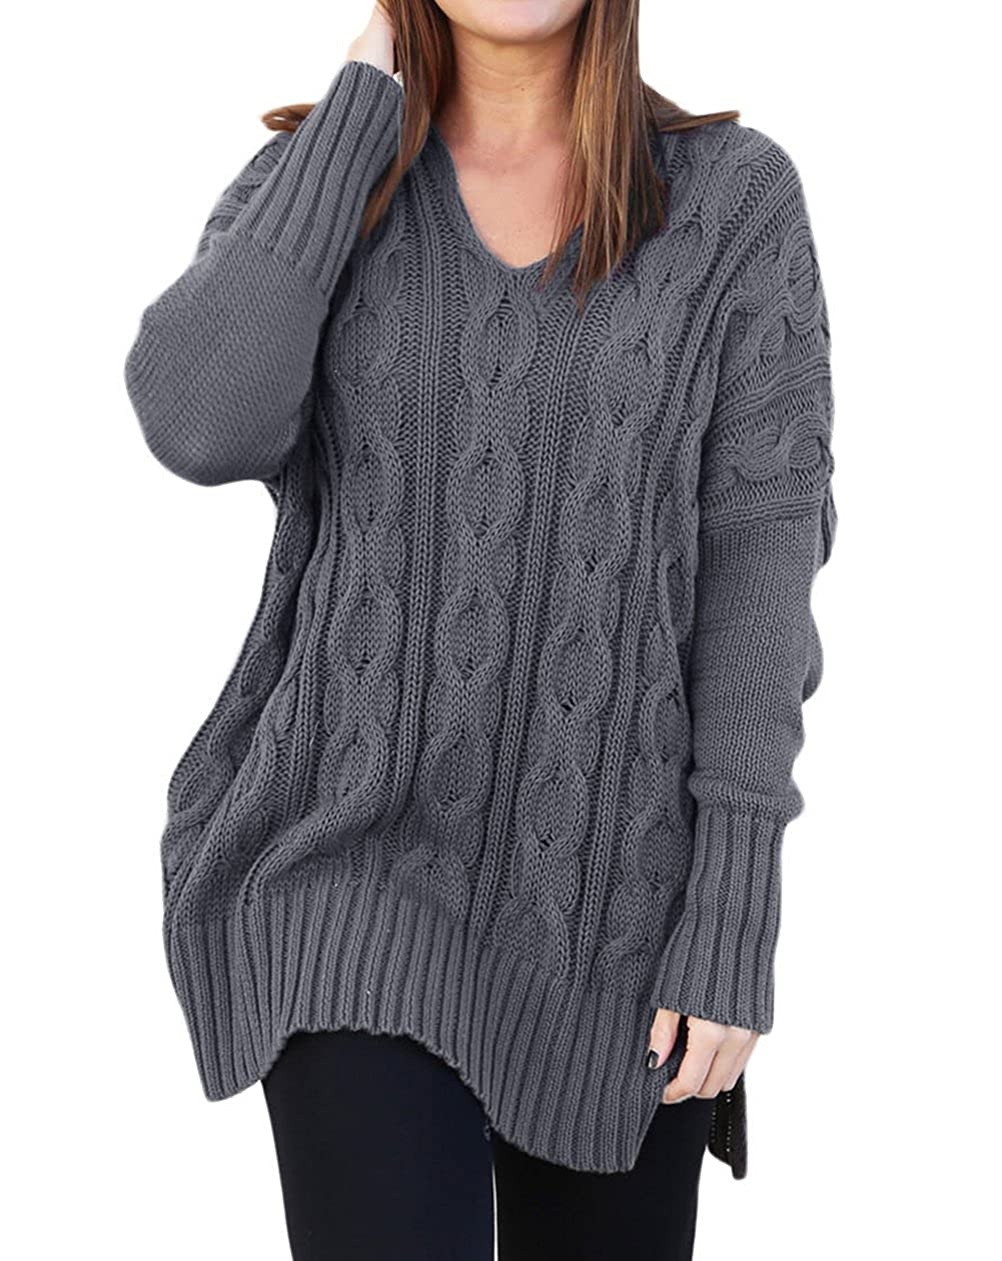 9e88837e65ae Womens Casual Cable Knit V Neck Side Slit Oversized Solid Pullover Sweater  Tops at Amazon Women s Clothing store